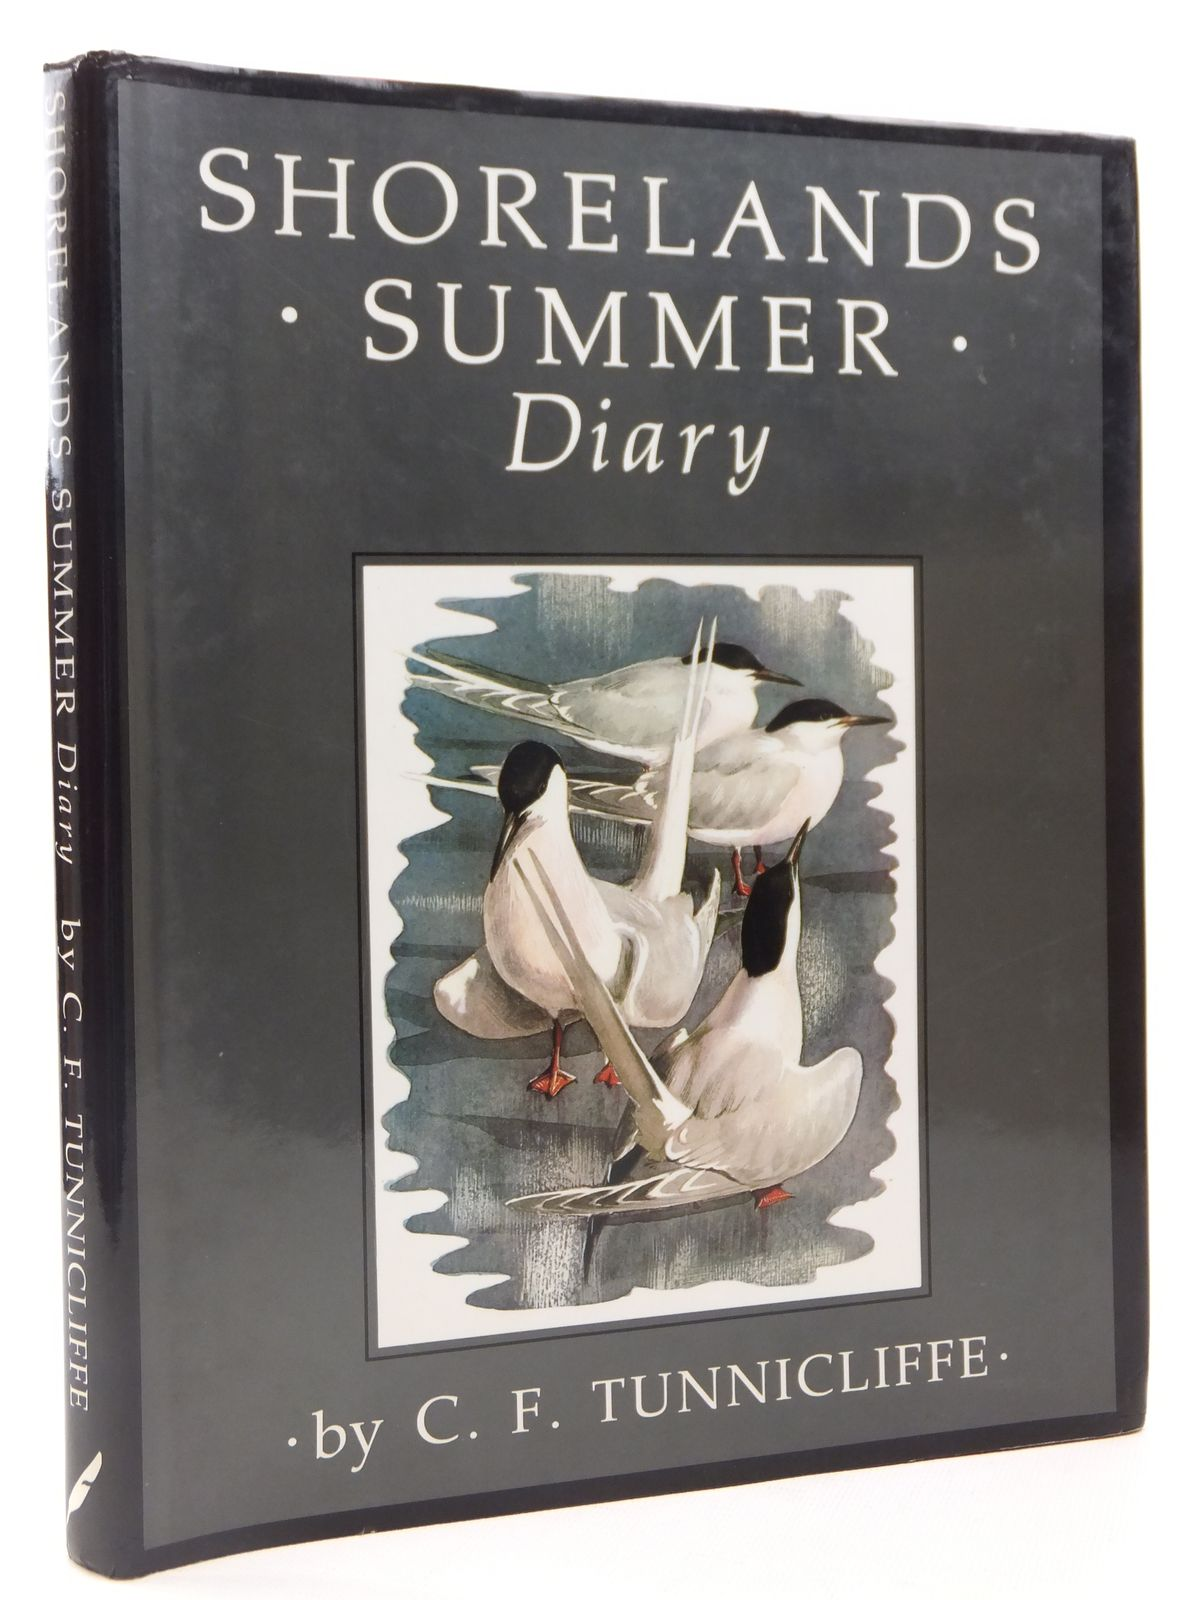 Photo of SHORELANDS SUMMER DIARY written by Tunnicliffe, C.F. illustrated by Tunnicliffe, C.F. published by Clive Holloway Books (STOCK CODE: 2122424)  for sale by Stella & Rose's Books